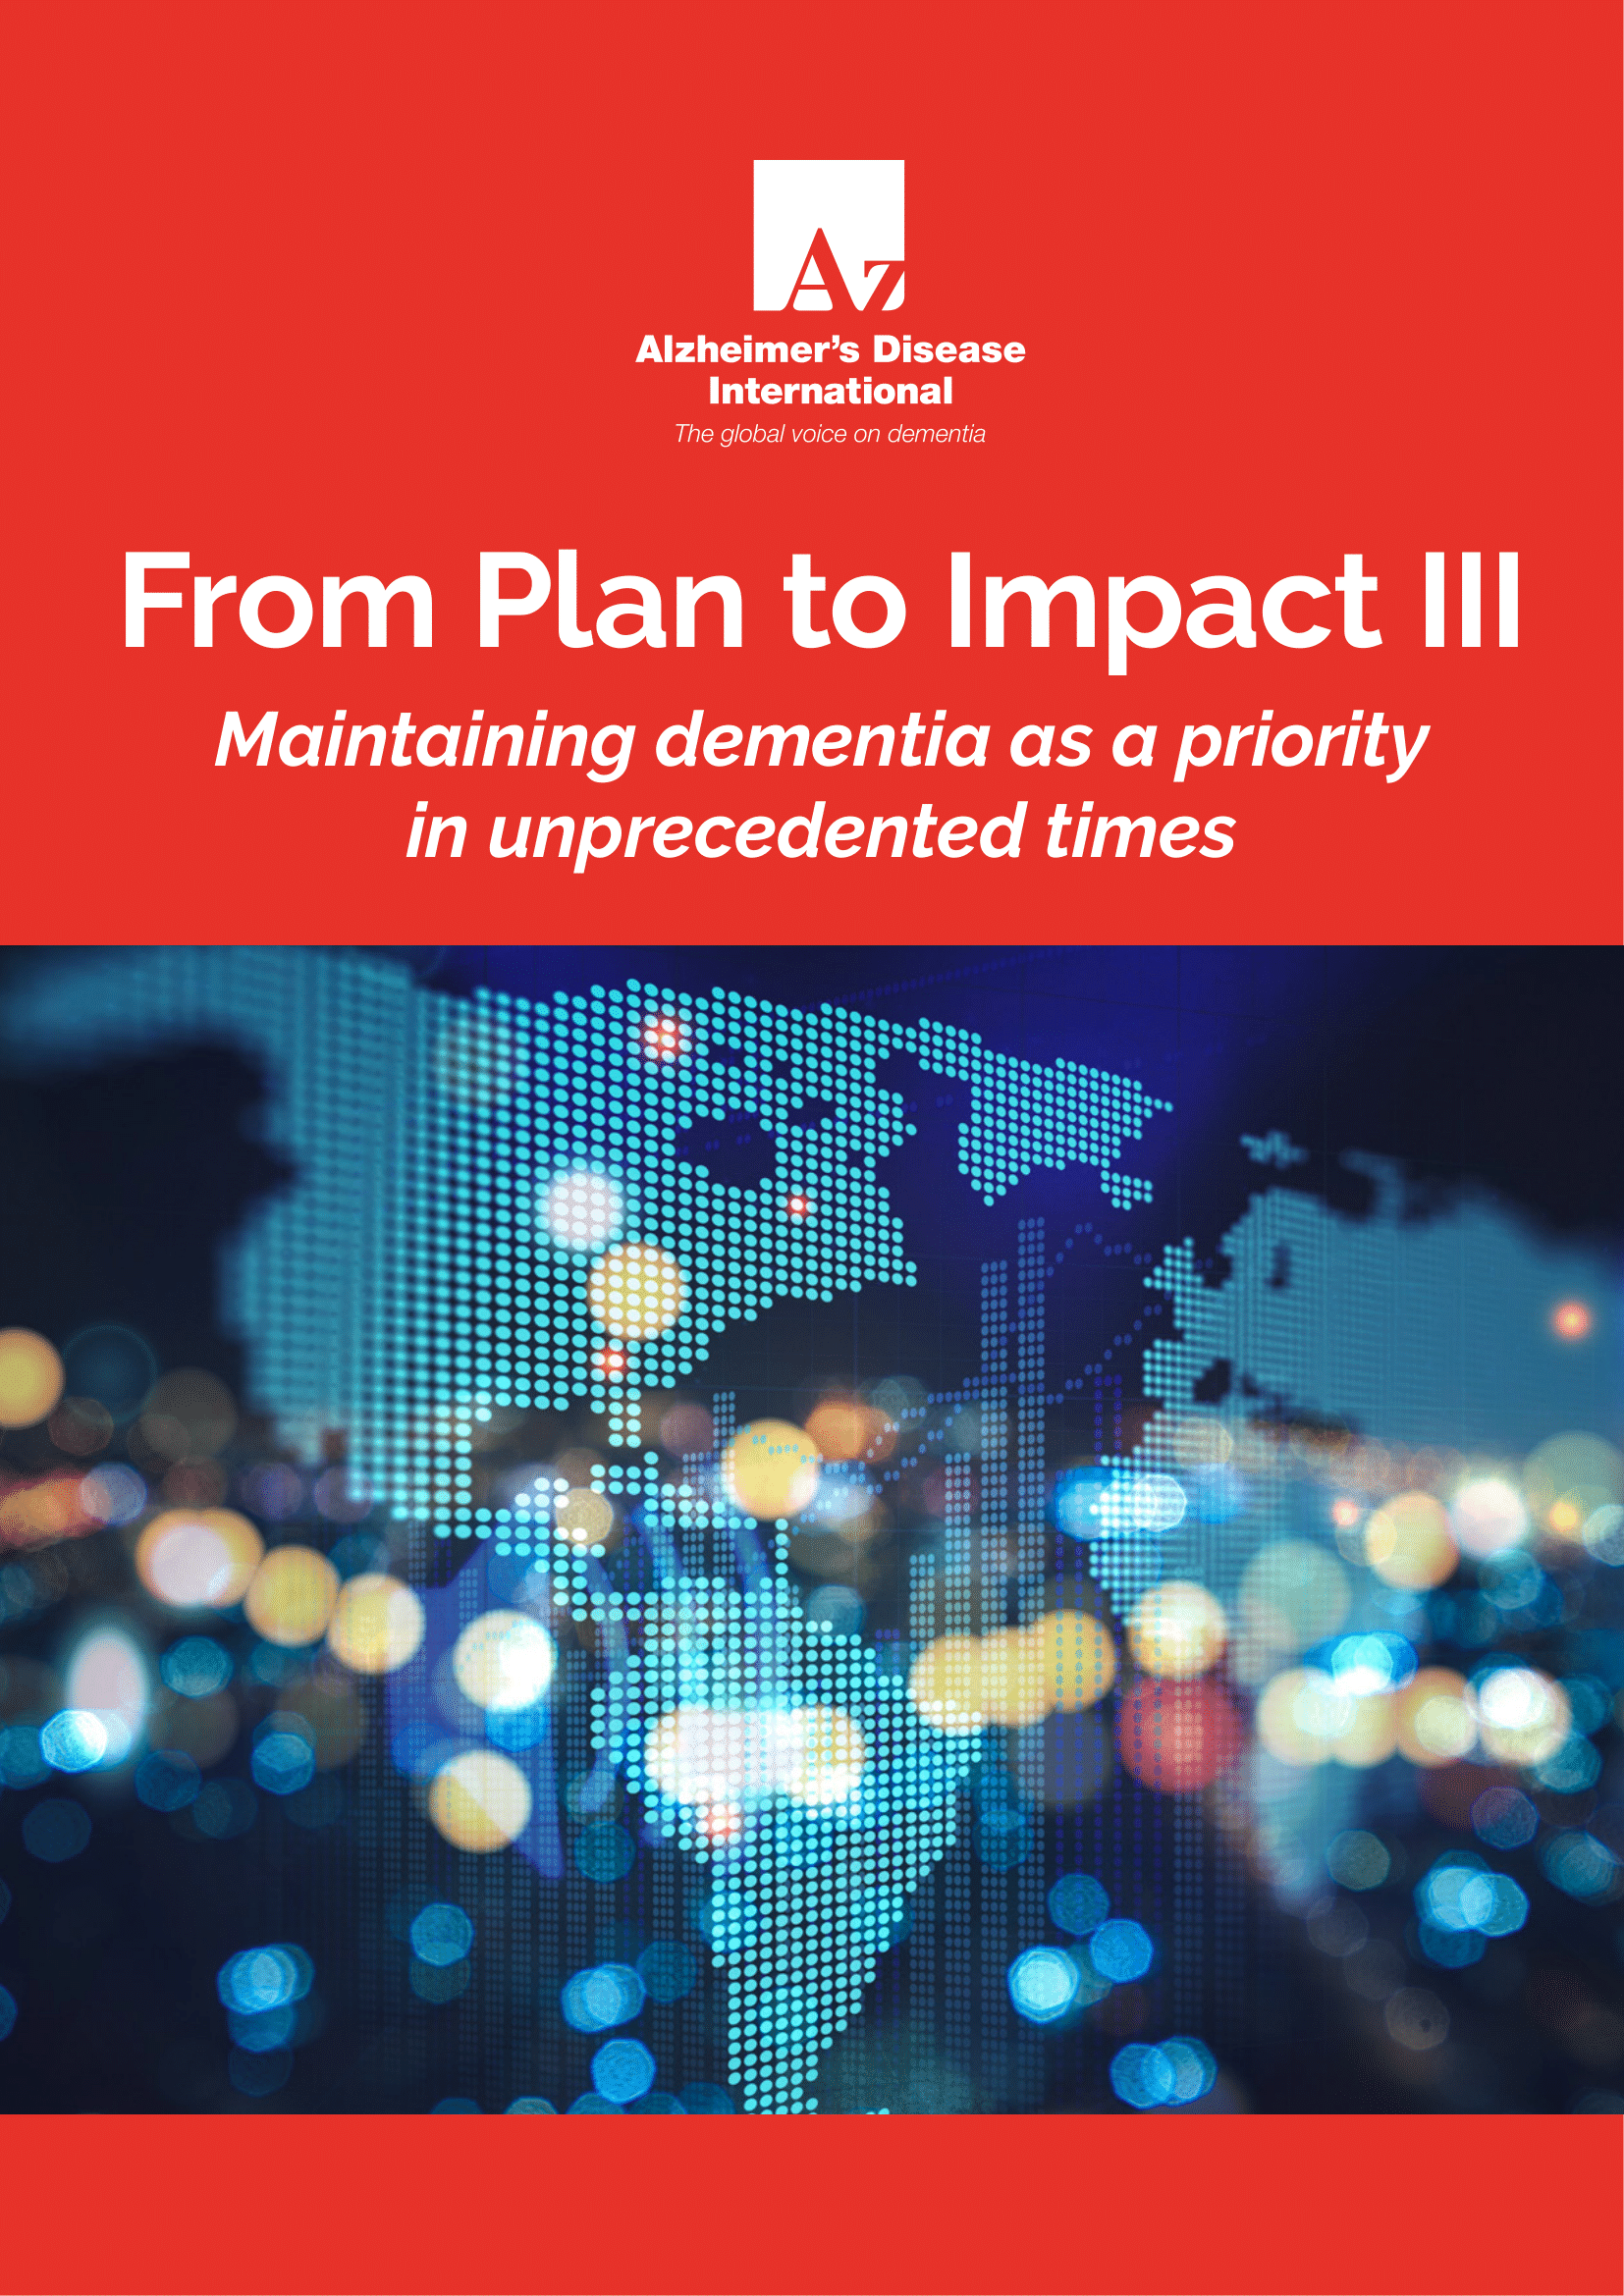 From Plan to Impact III